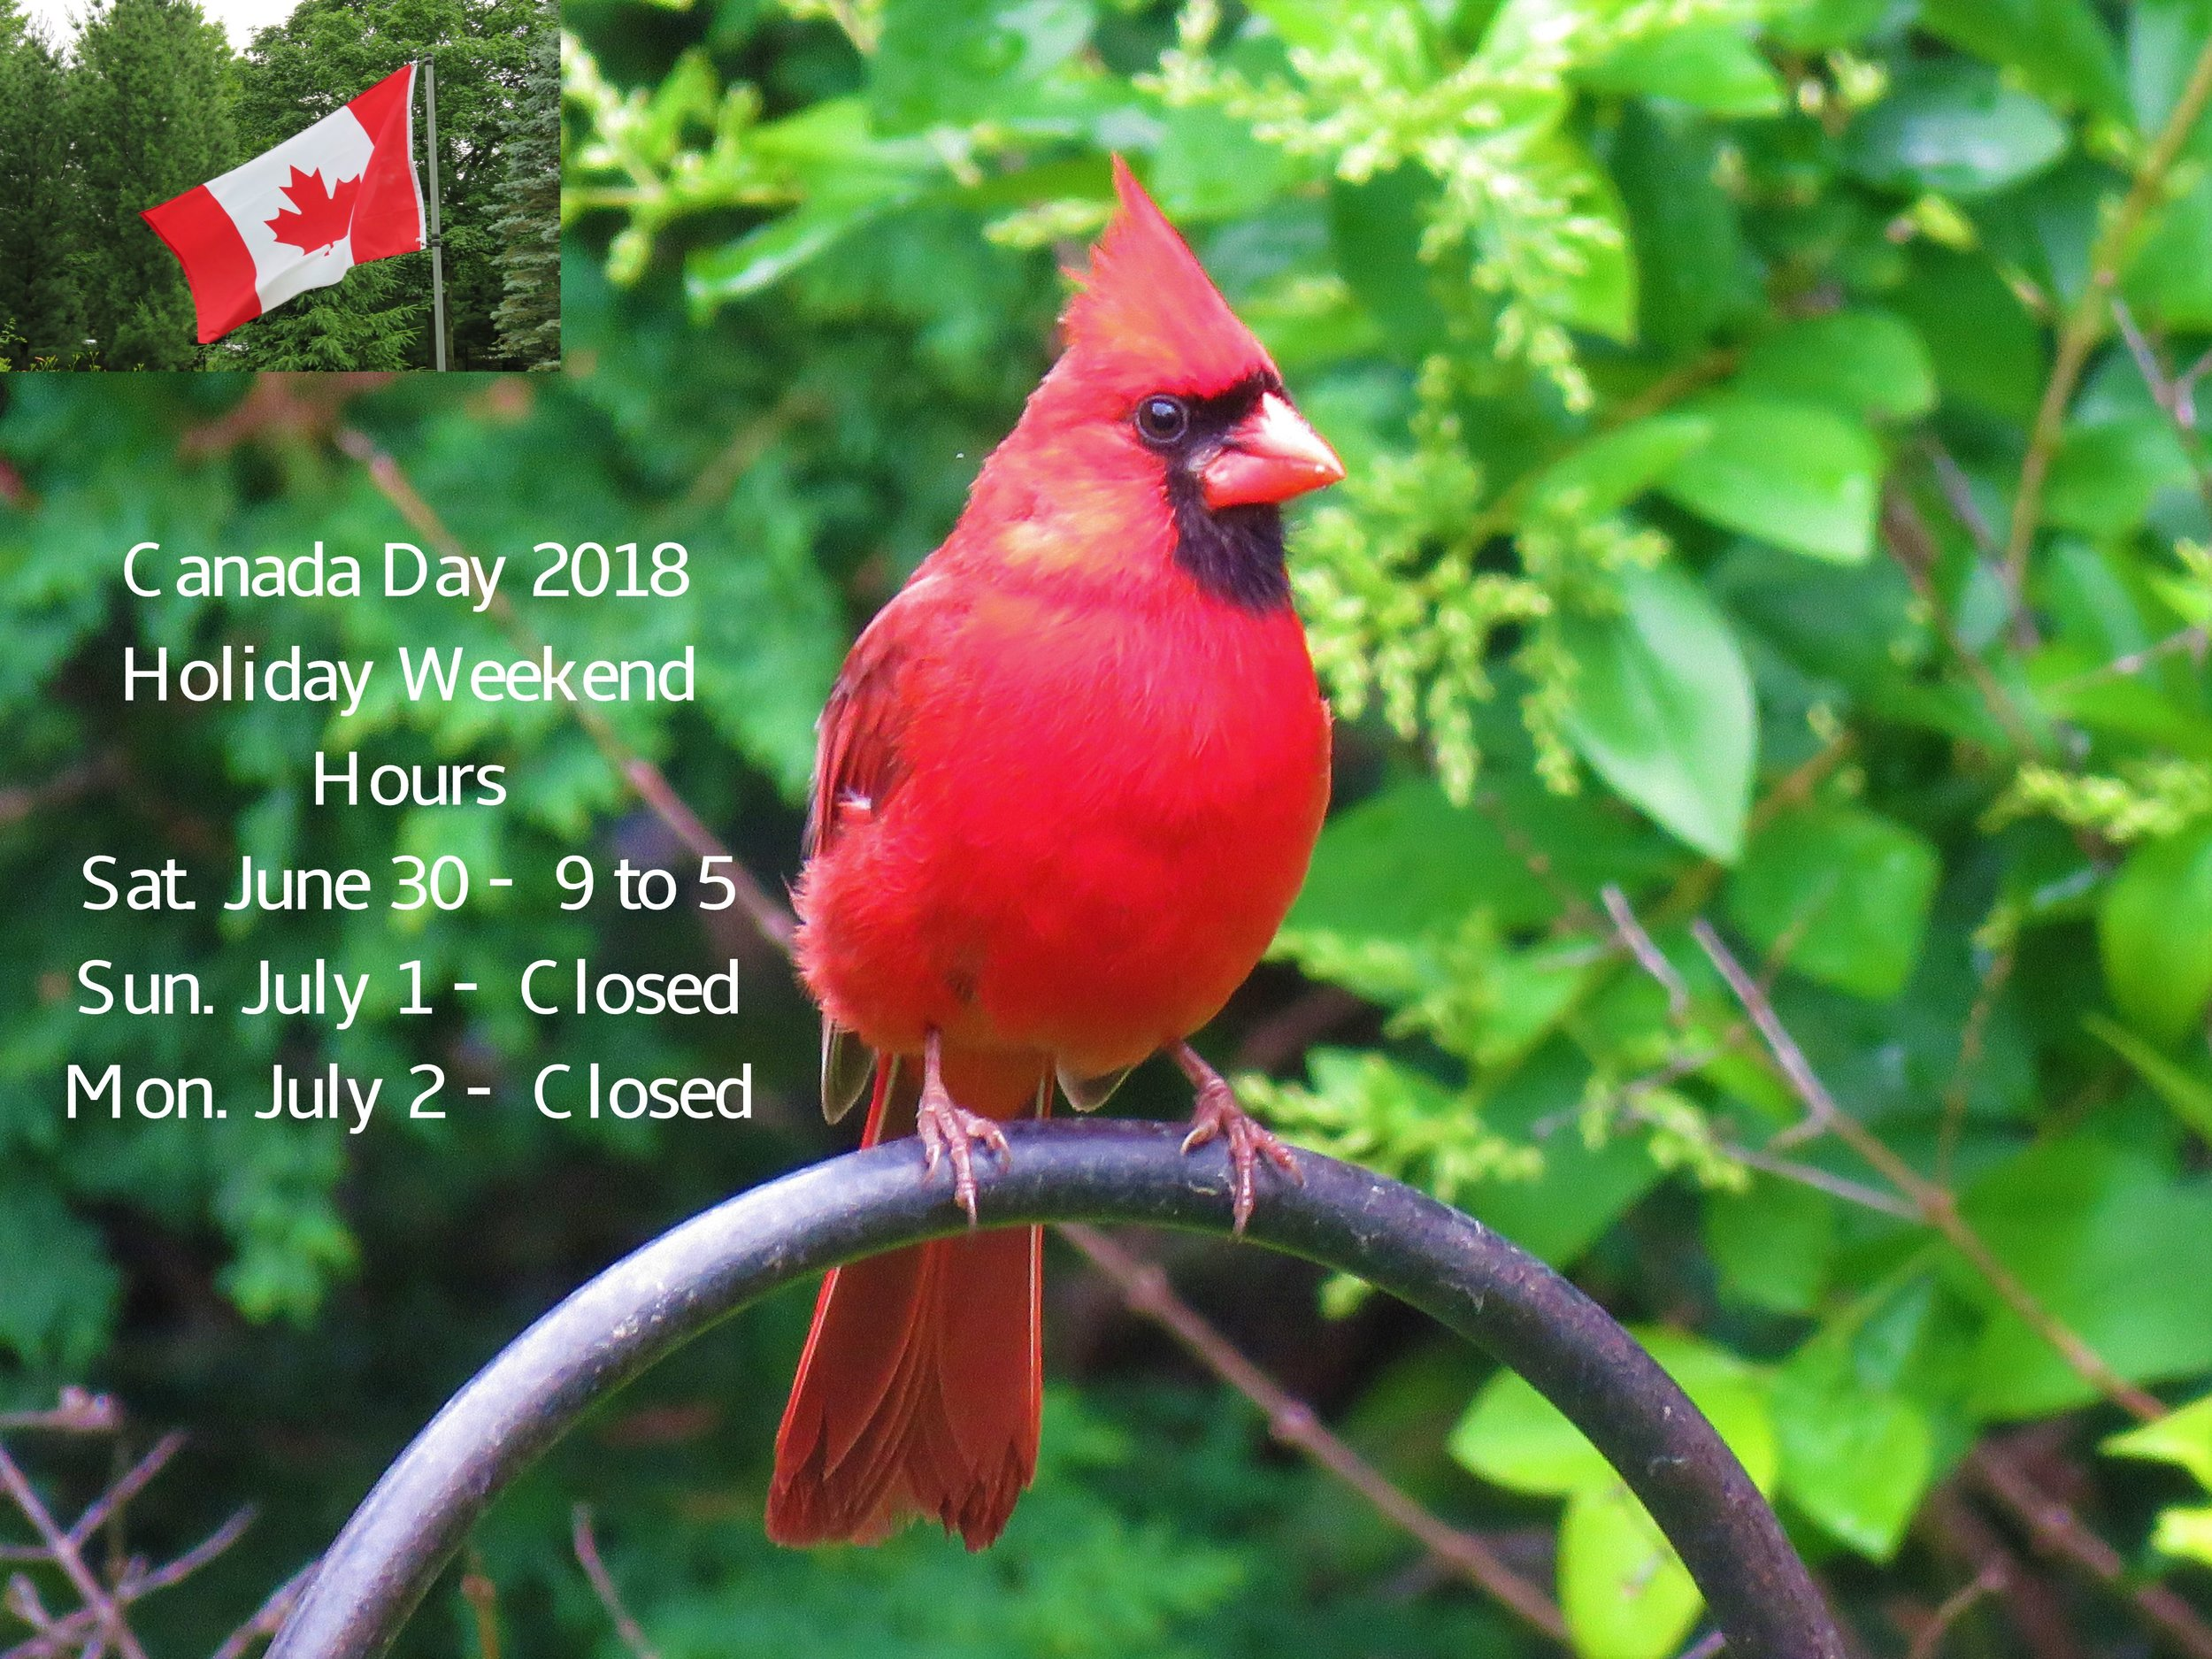 Thanks to Mr Cardinal for visiting at the perfect time and showing off his beautiful red!